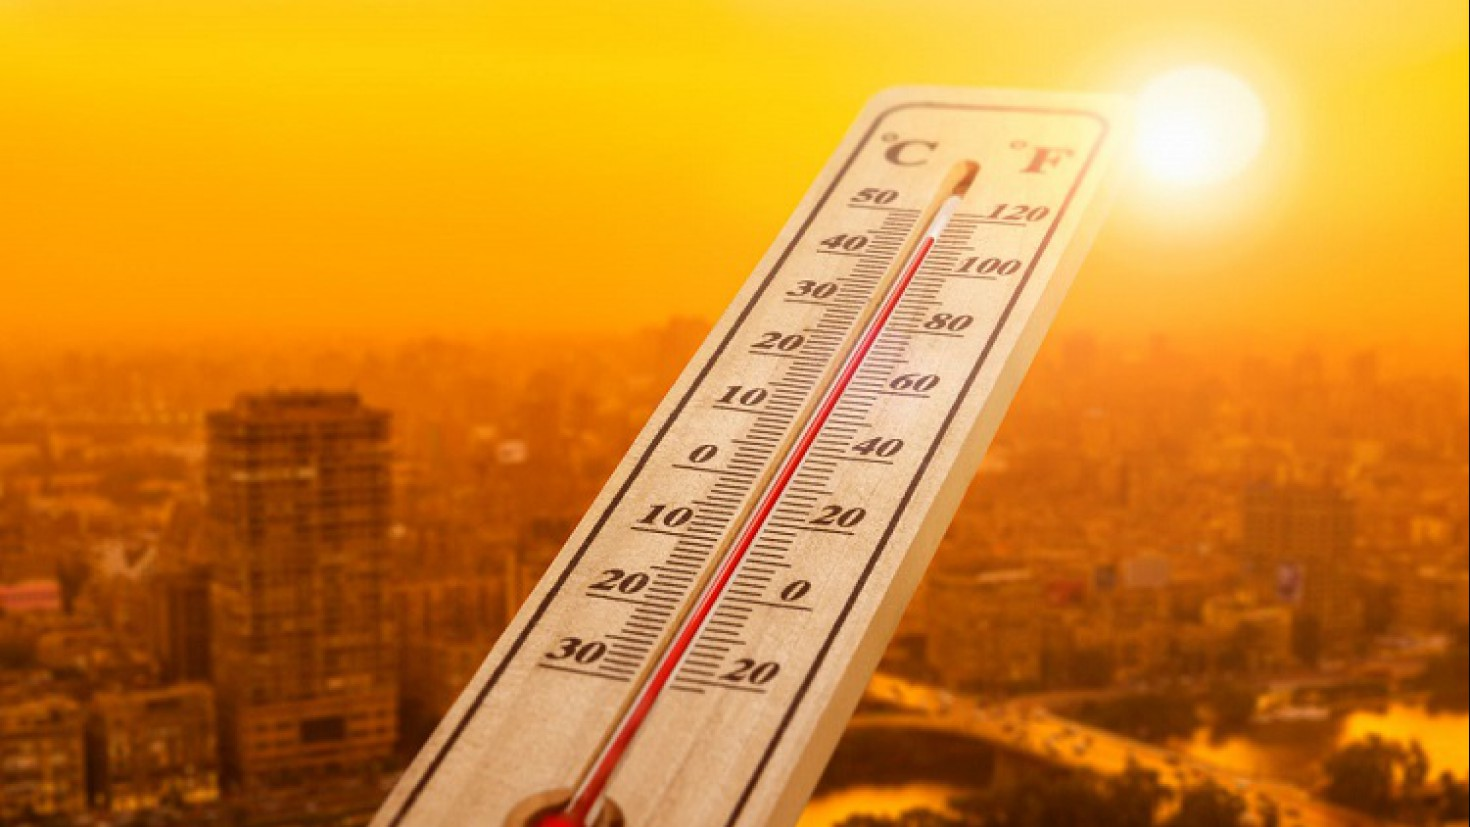 Heatcost will look at health risks